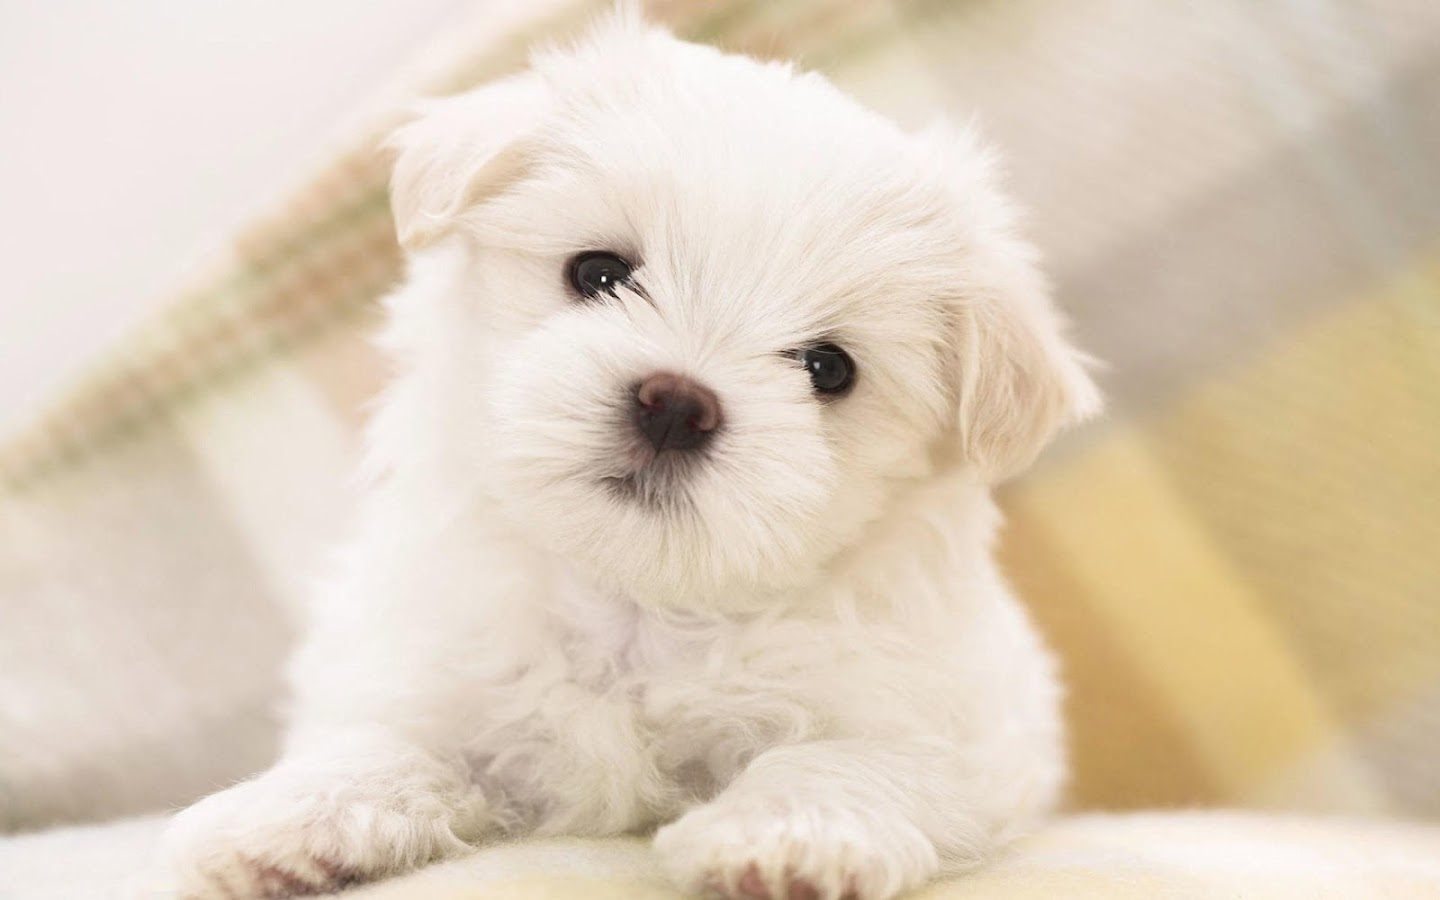 Puppies Live Wallpaper 🐶 Cute Puppy Android Apps on